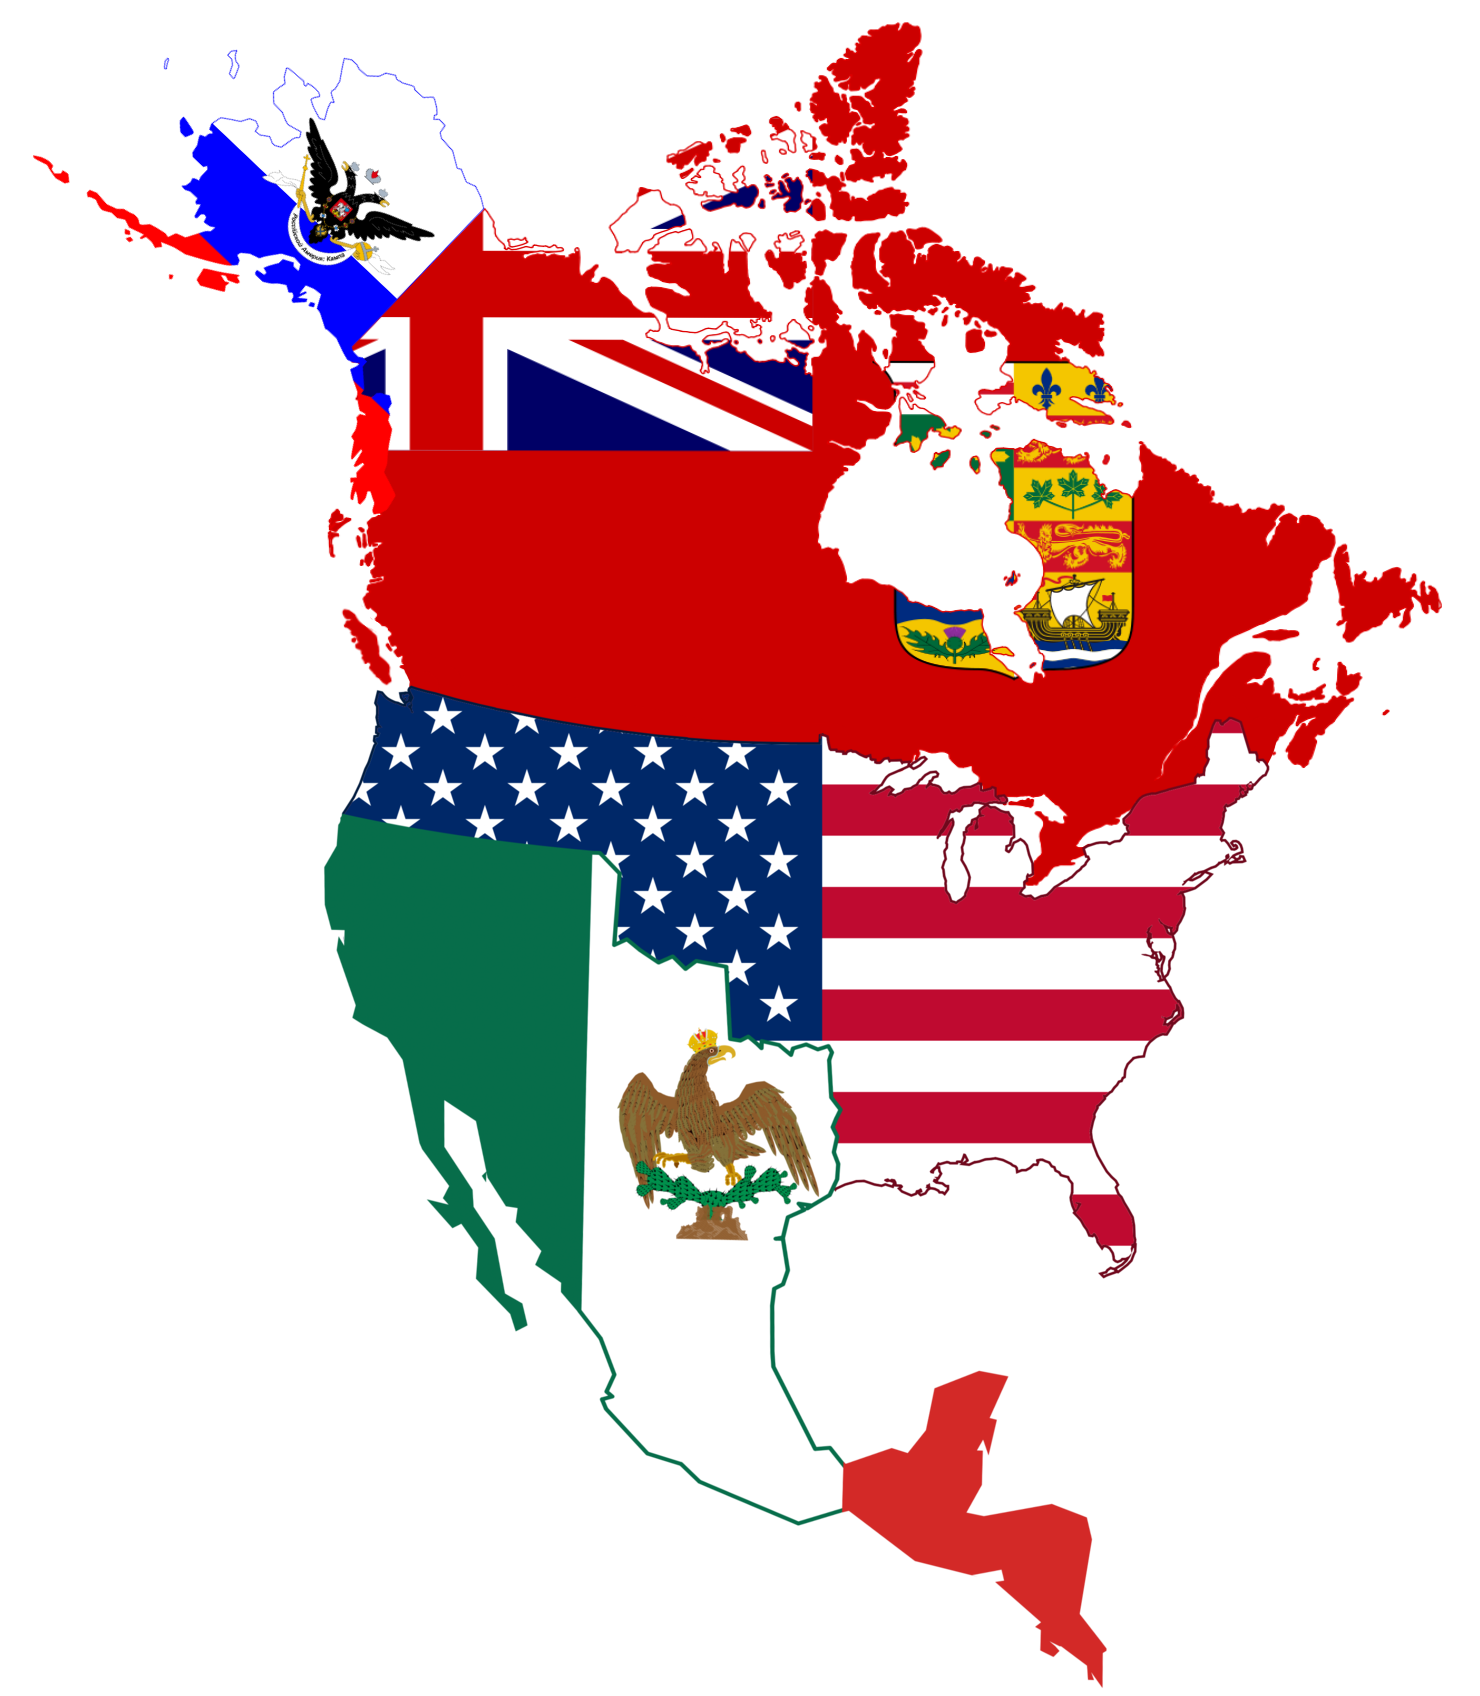 FileNorth American Historic Flag Mappng Wikimedia Commons